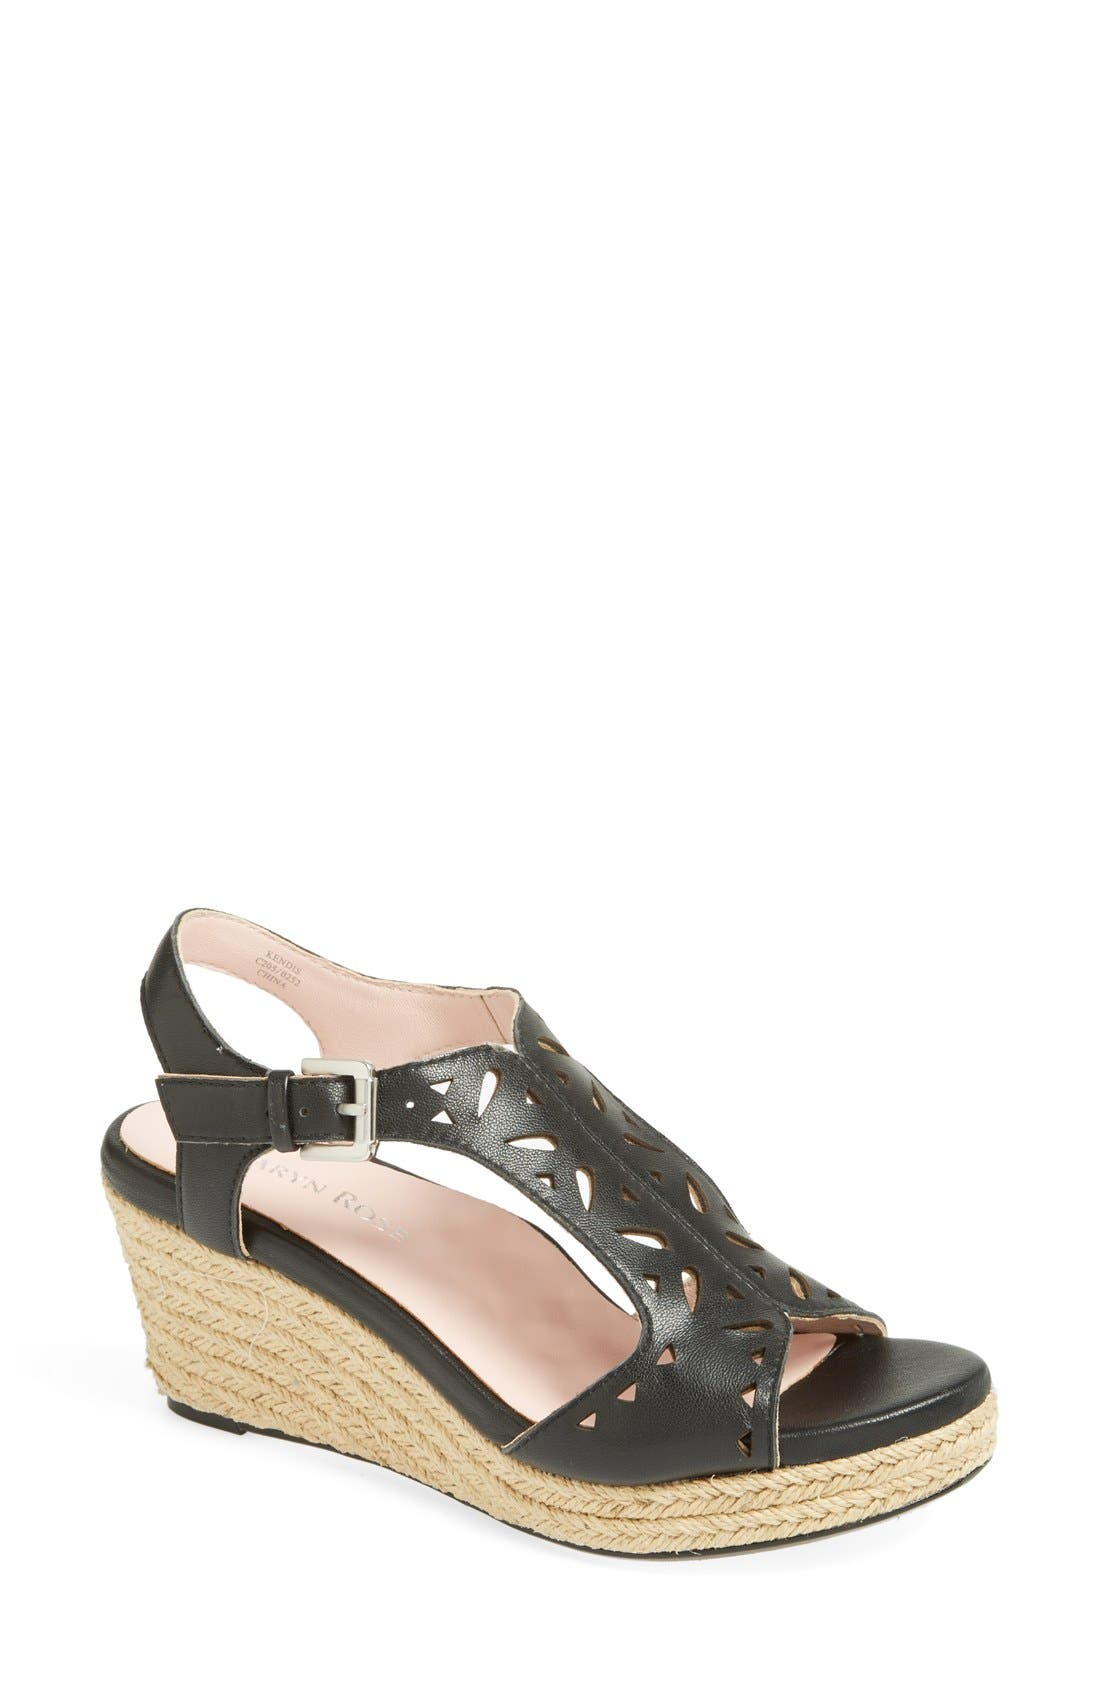 Alternate Image 1 Selected - Taryn Rose 'Kendis' Sandal